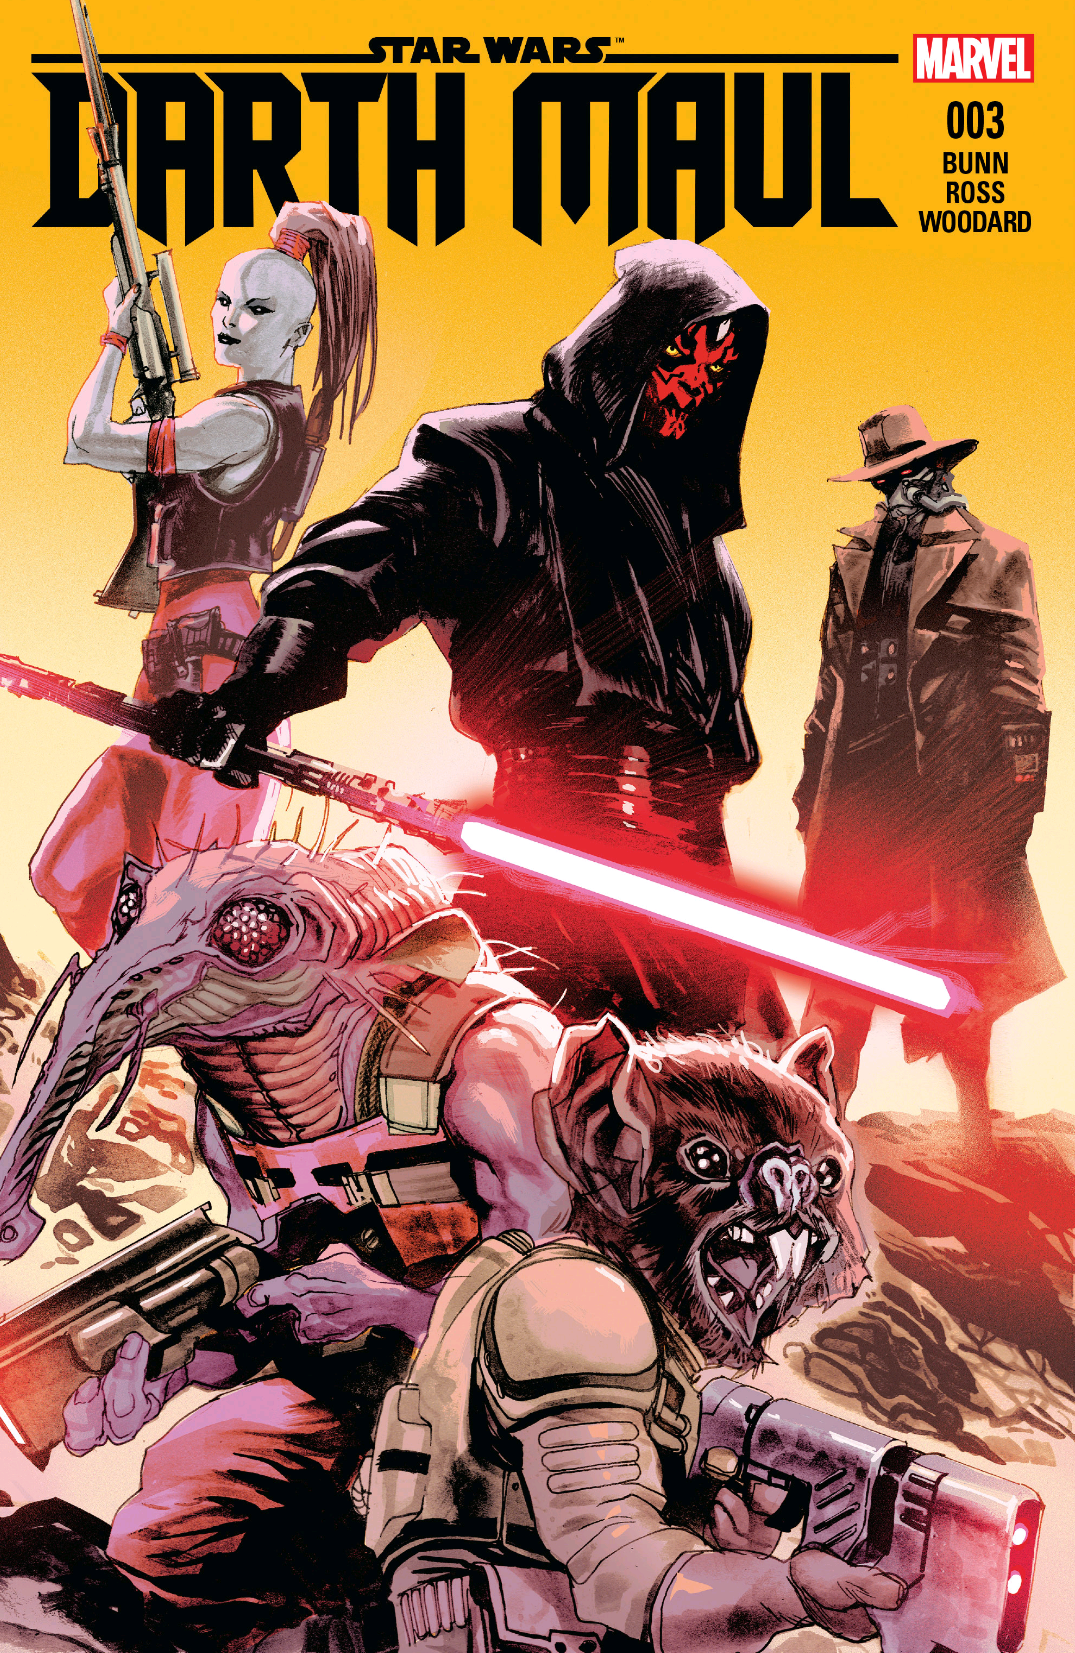 After A Pretty Solid Couple Of Issues The Limited Darth Maul Series Continues With Its